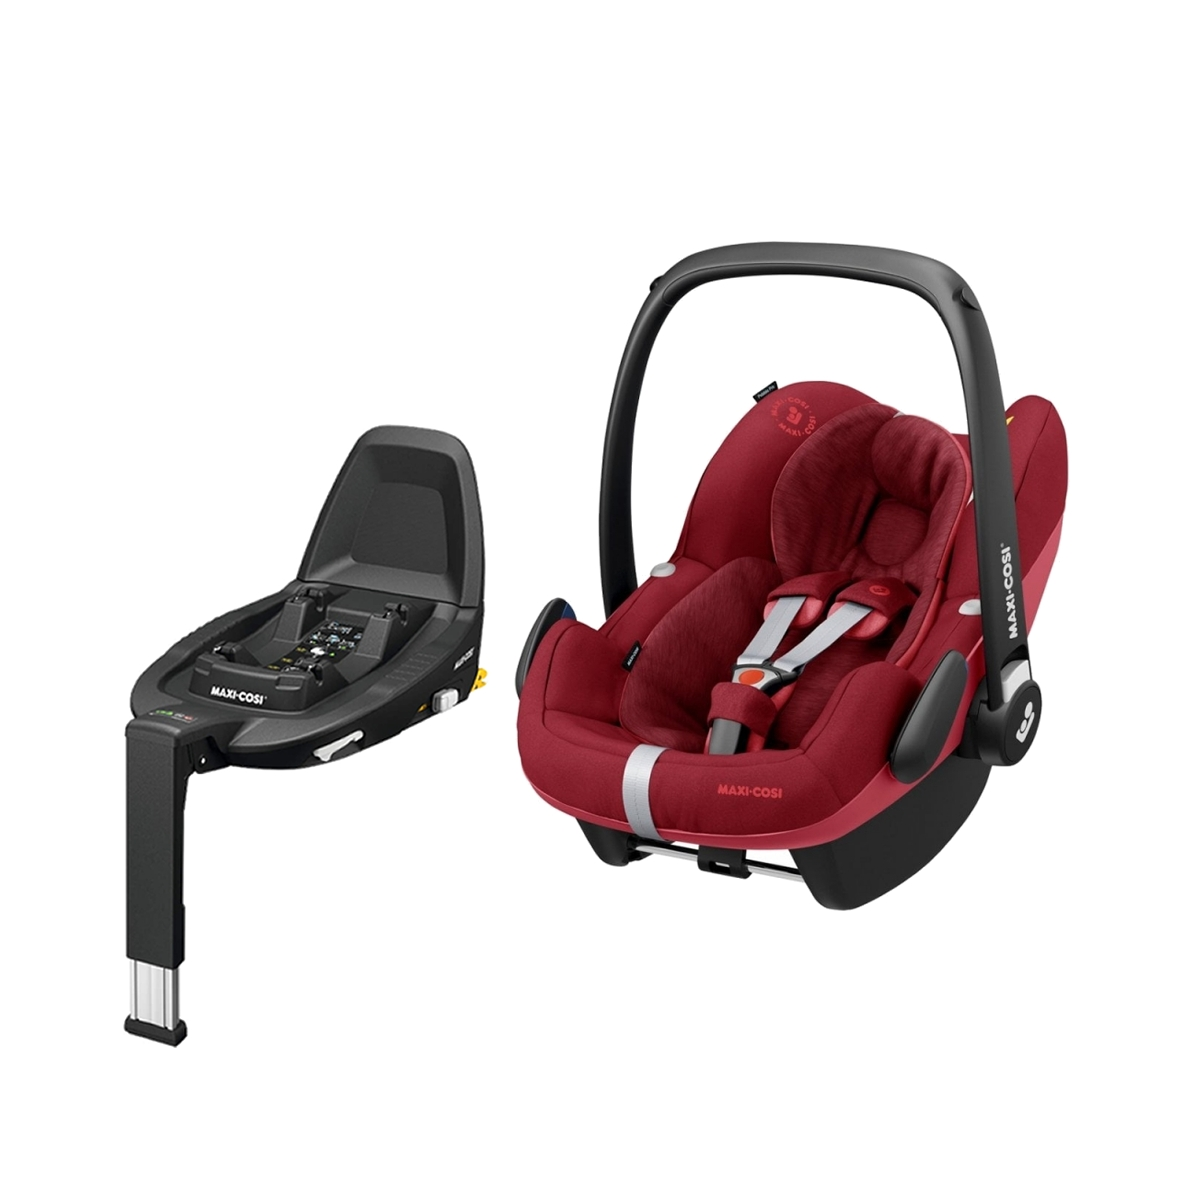 Maxi Cosi Pebble Pro Group 0+ Car Seat With FamilyFix3 Base-Essential Red